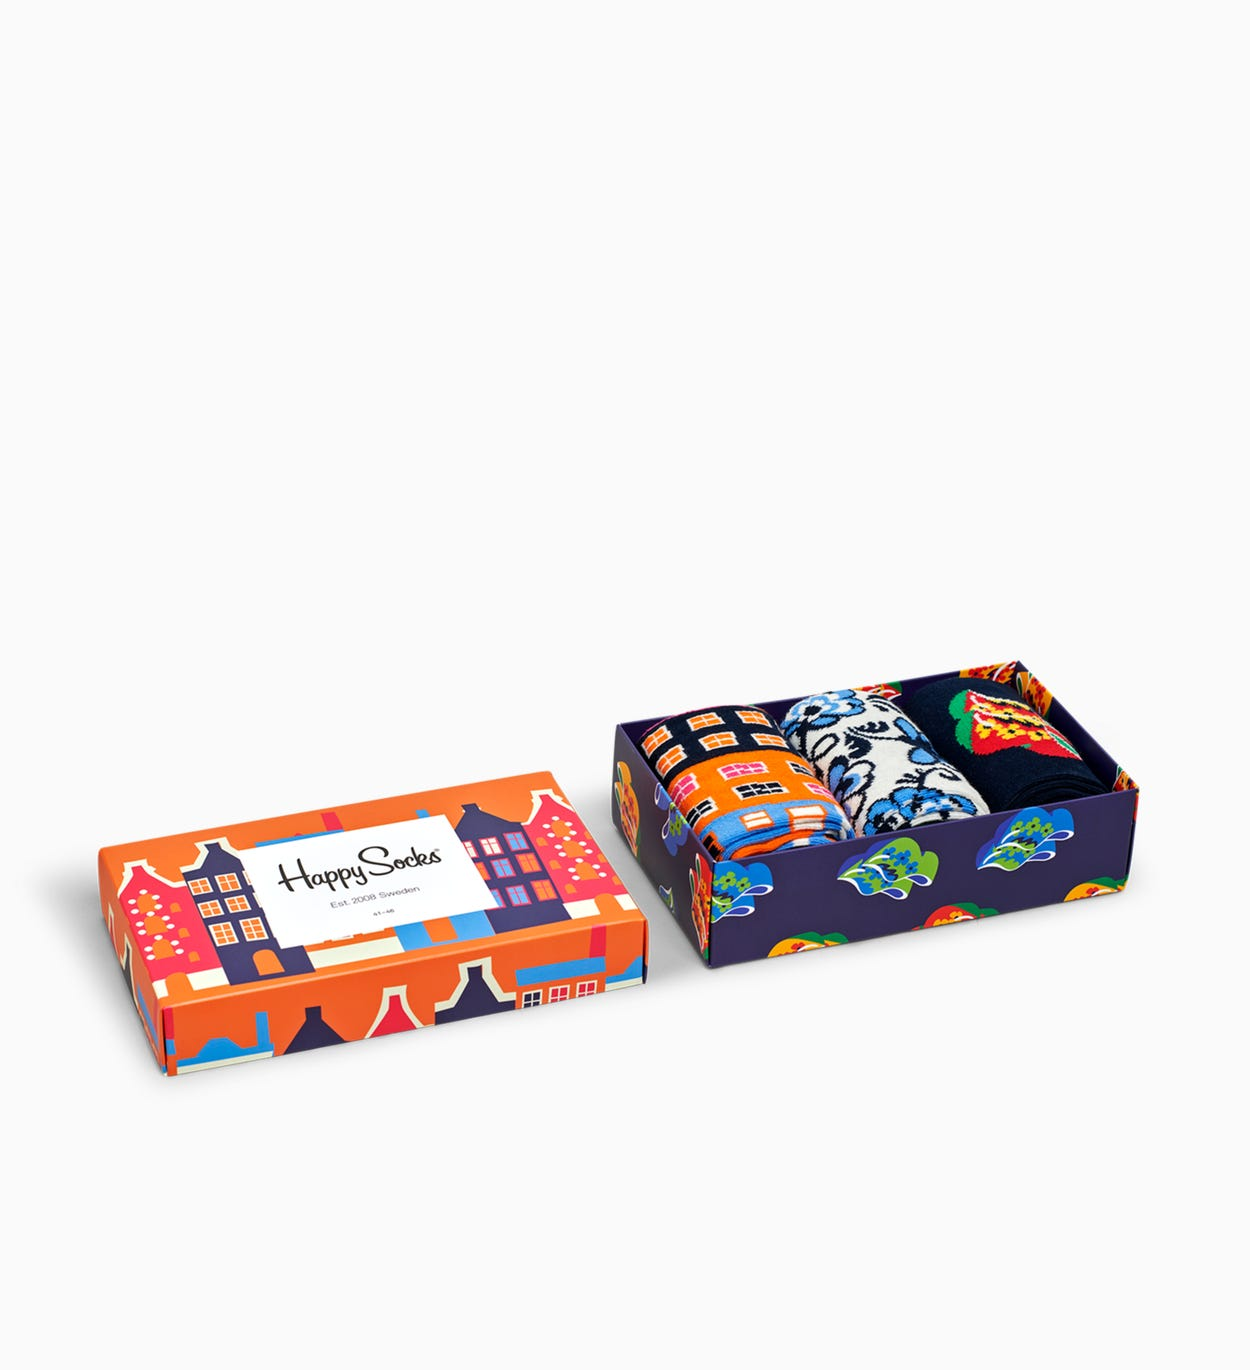 Dutch Edition Socks Gift Box 3-pc | Happy Socks